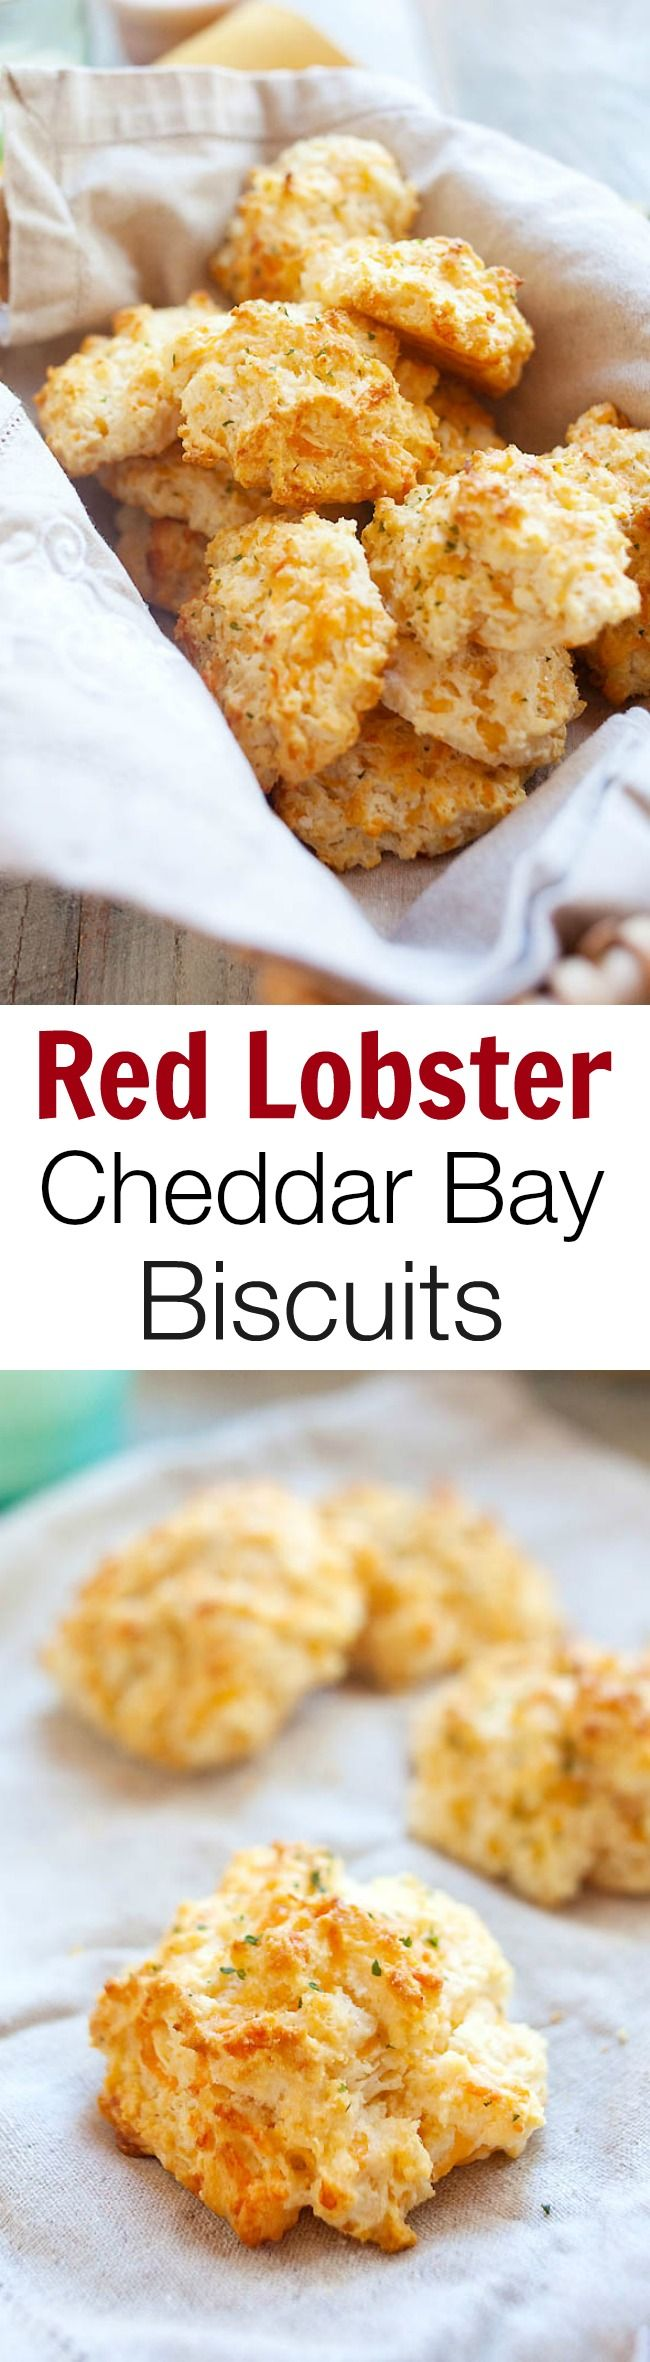 red lobster cheddar bay biscuit instructions